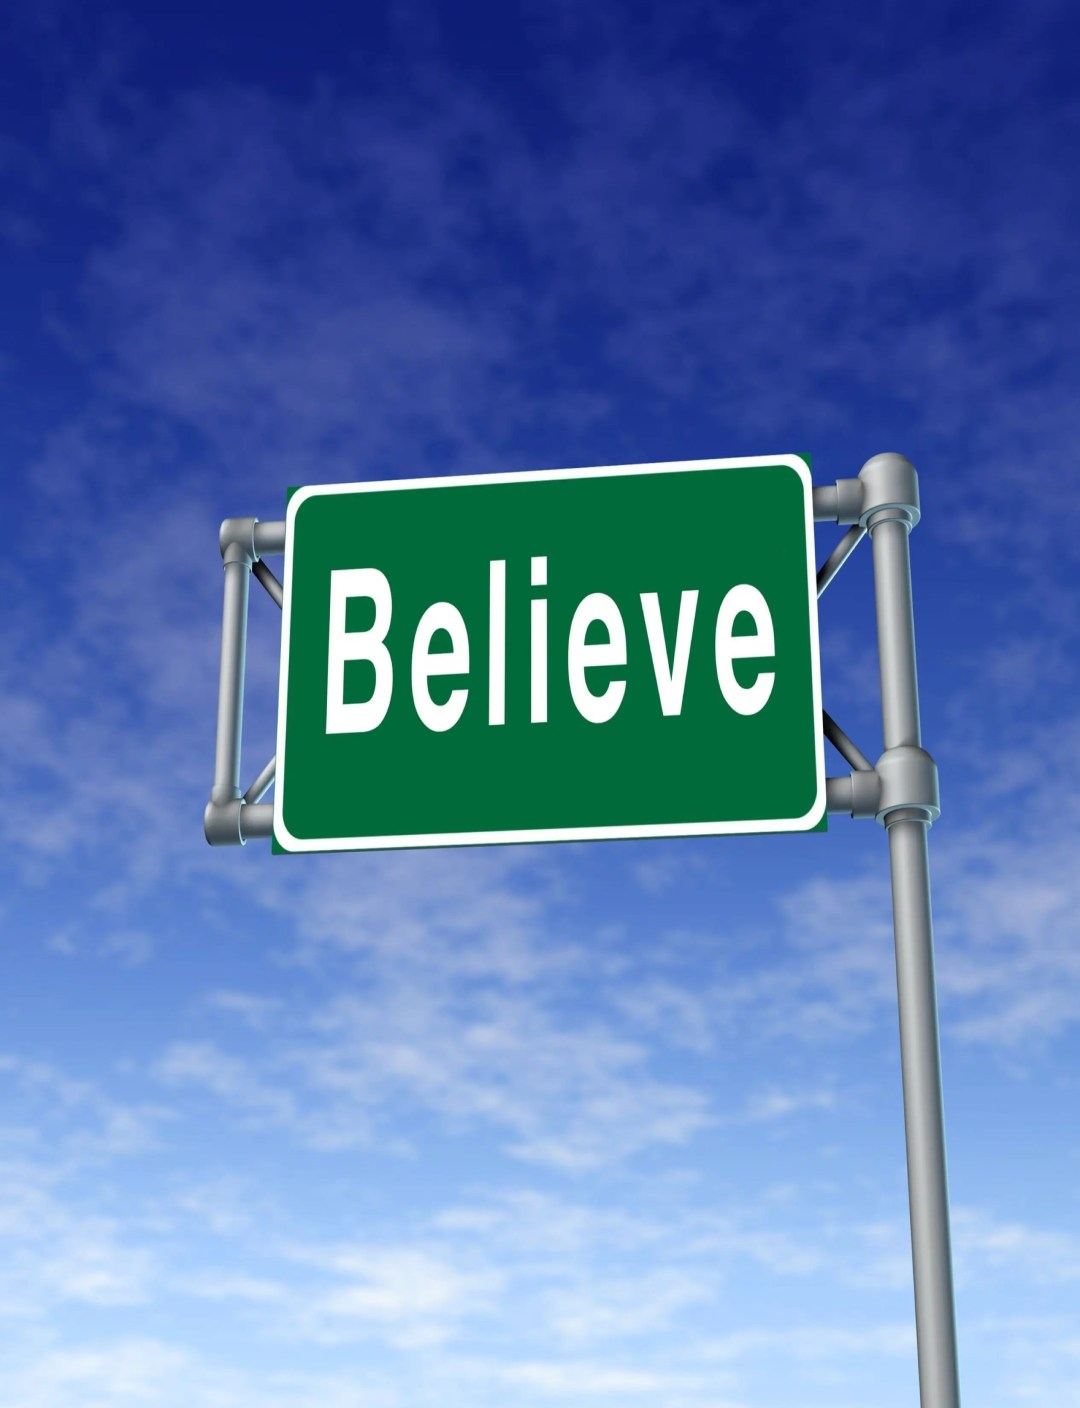 Believe - One or all of the Categories are For You